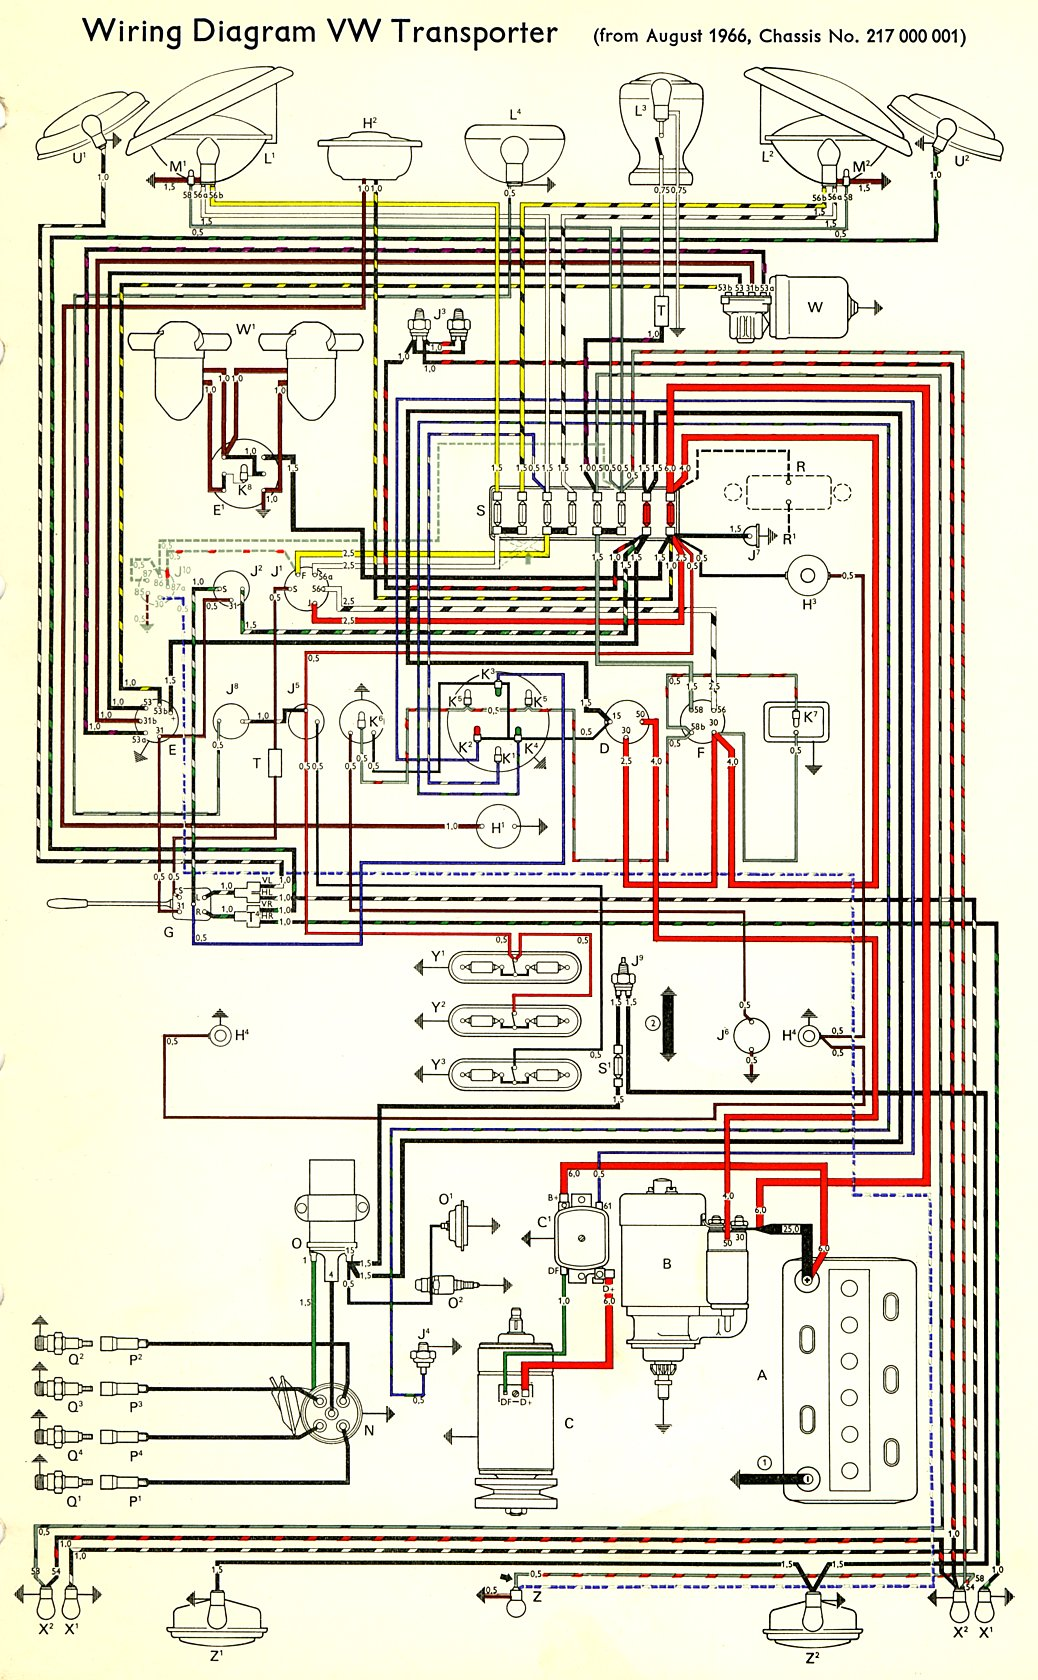 bus_67 67 vw bus wiring harness 71 vw wiring harness \u2022 wiring diagrams Wiring Harness Diagram at mifinder.co